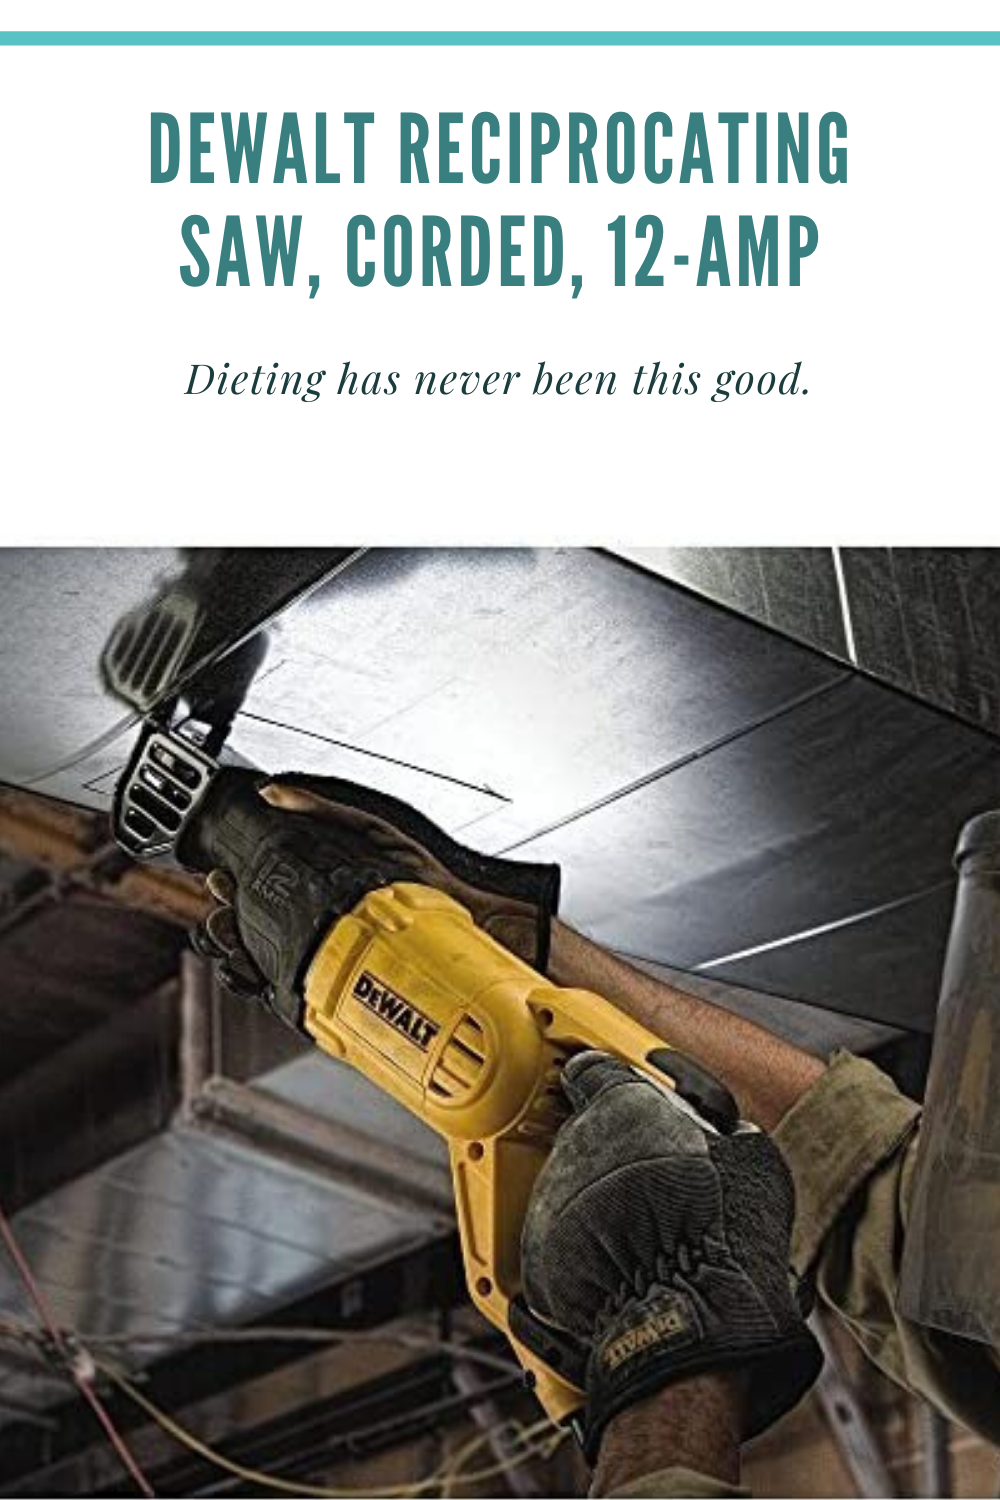 Dewalt Reciprocating Saw Corded 12 Amp In 2020 Reciprocating Saw Cordless Reciprocating Saw Saw